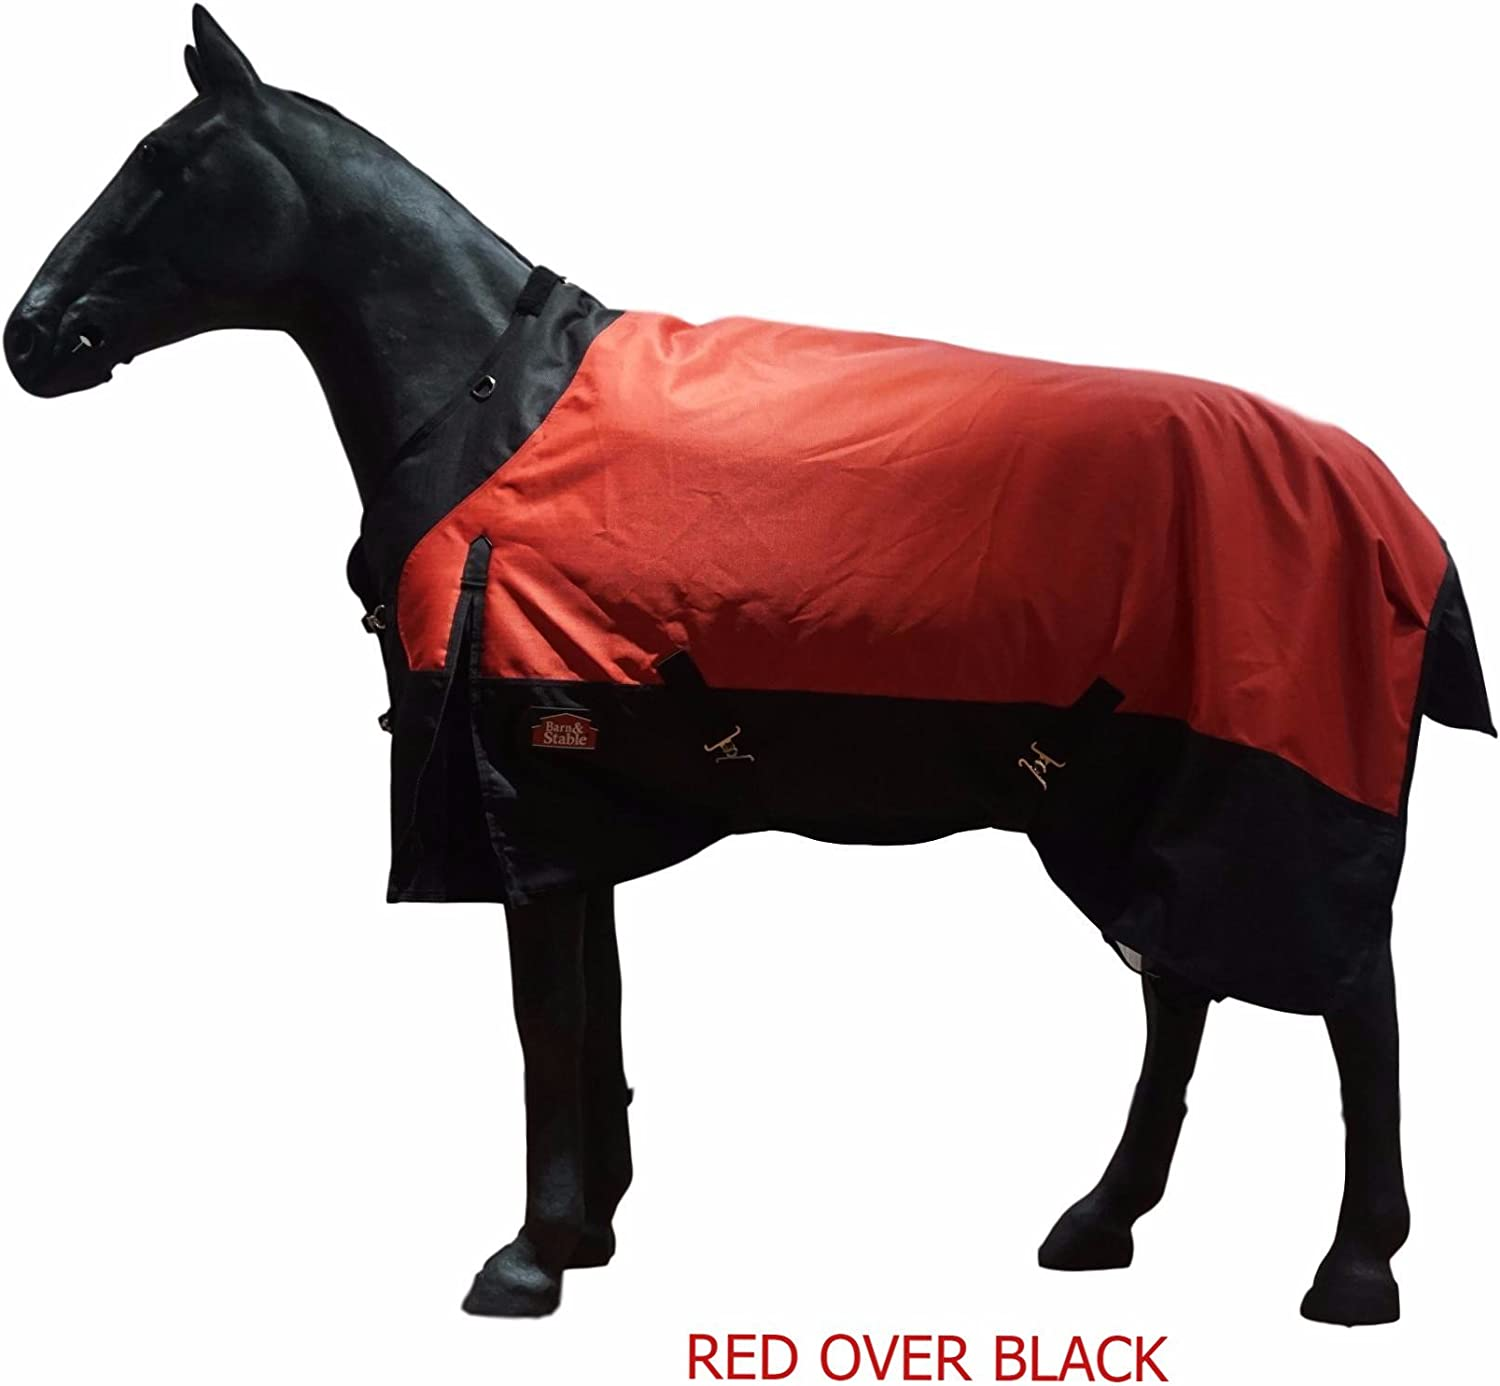 Barn&Stable Horse Blanket Turnout Blanket 1200D Ripstop, 210D Lining and 200grm Fill